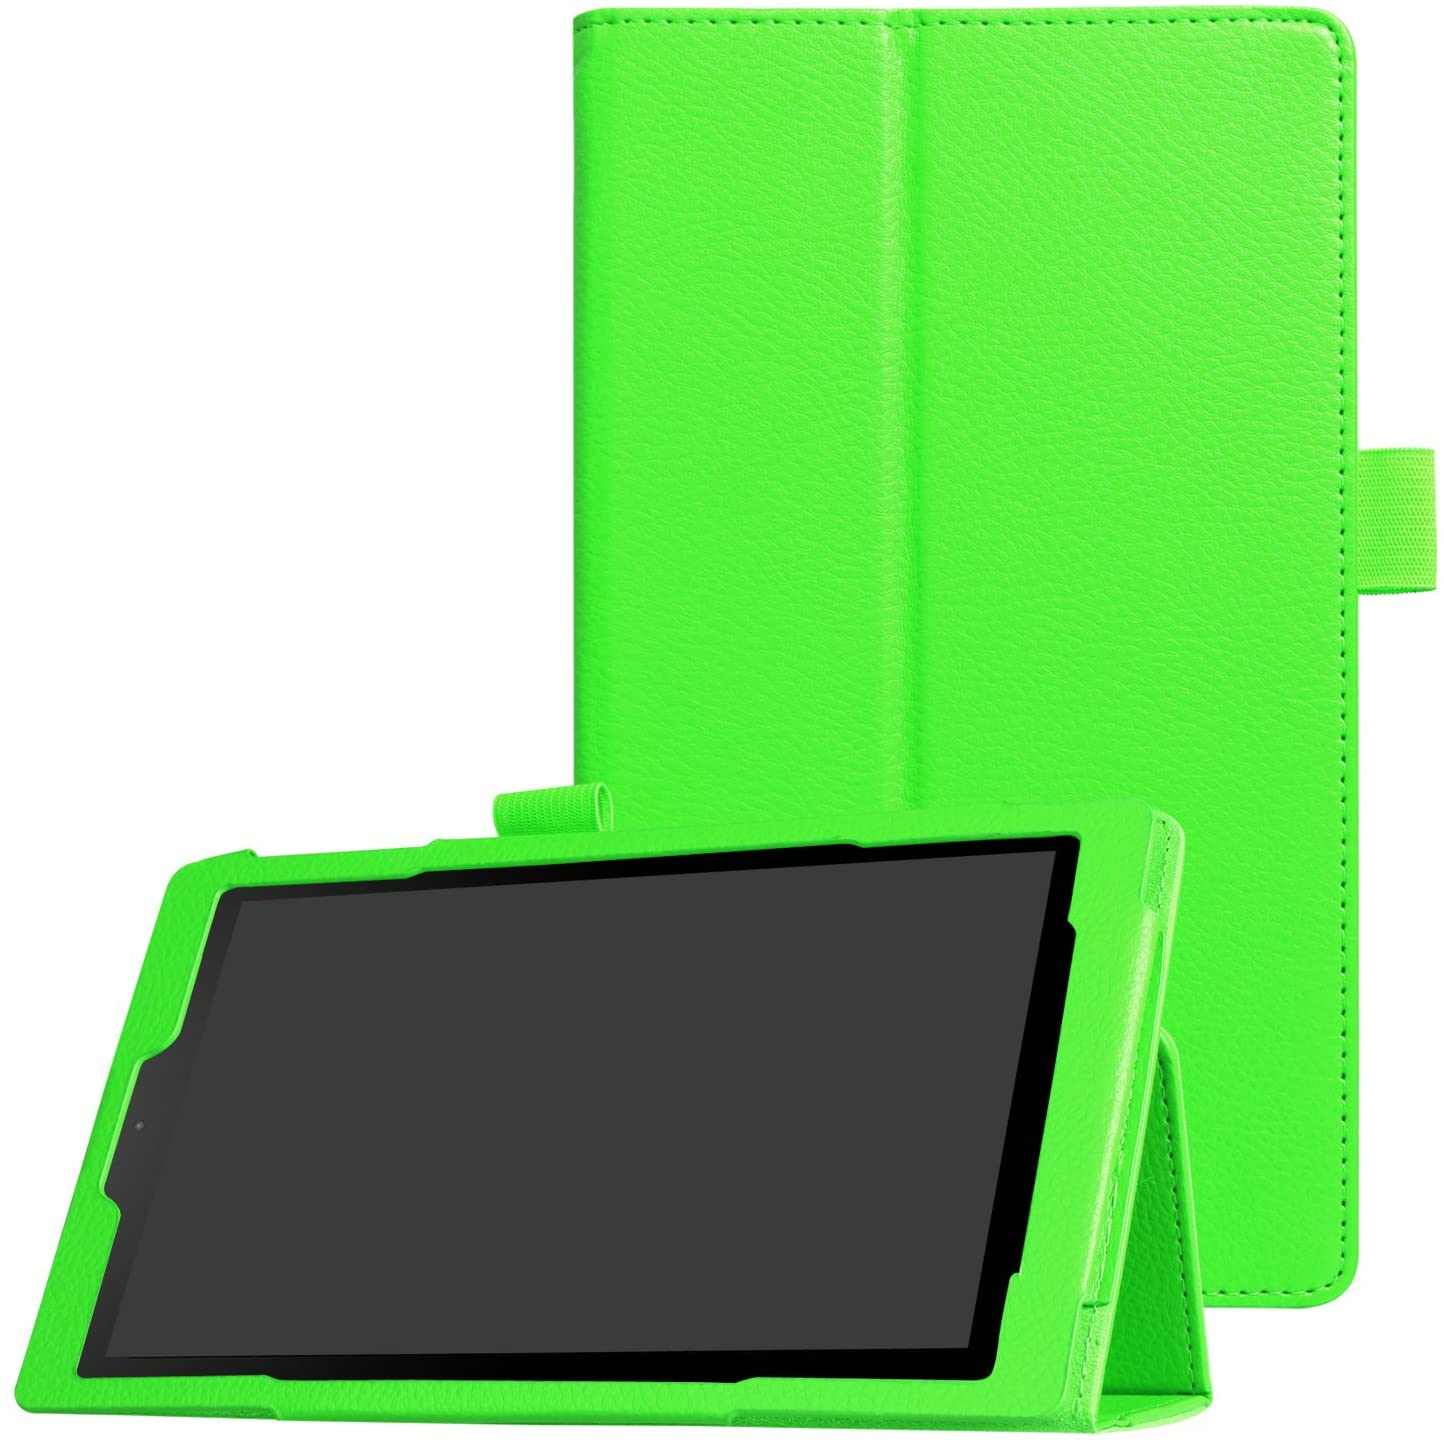 Asng All-New Fire HD 8 2018/Fire HD 8 2017/Fire HD 8 2016 Case - Premium PU Leather Folio Stand Cover Case with Auto Wake/Sleep for All-New Fire HD 8 (8th / 7th / 6th Generation) (Green)